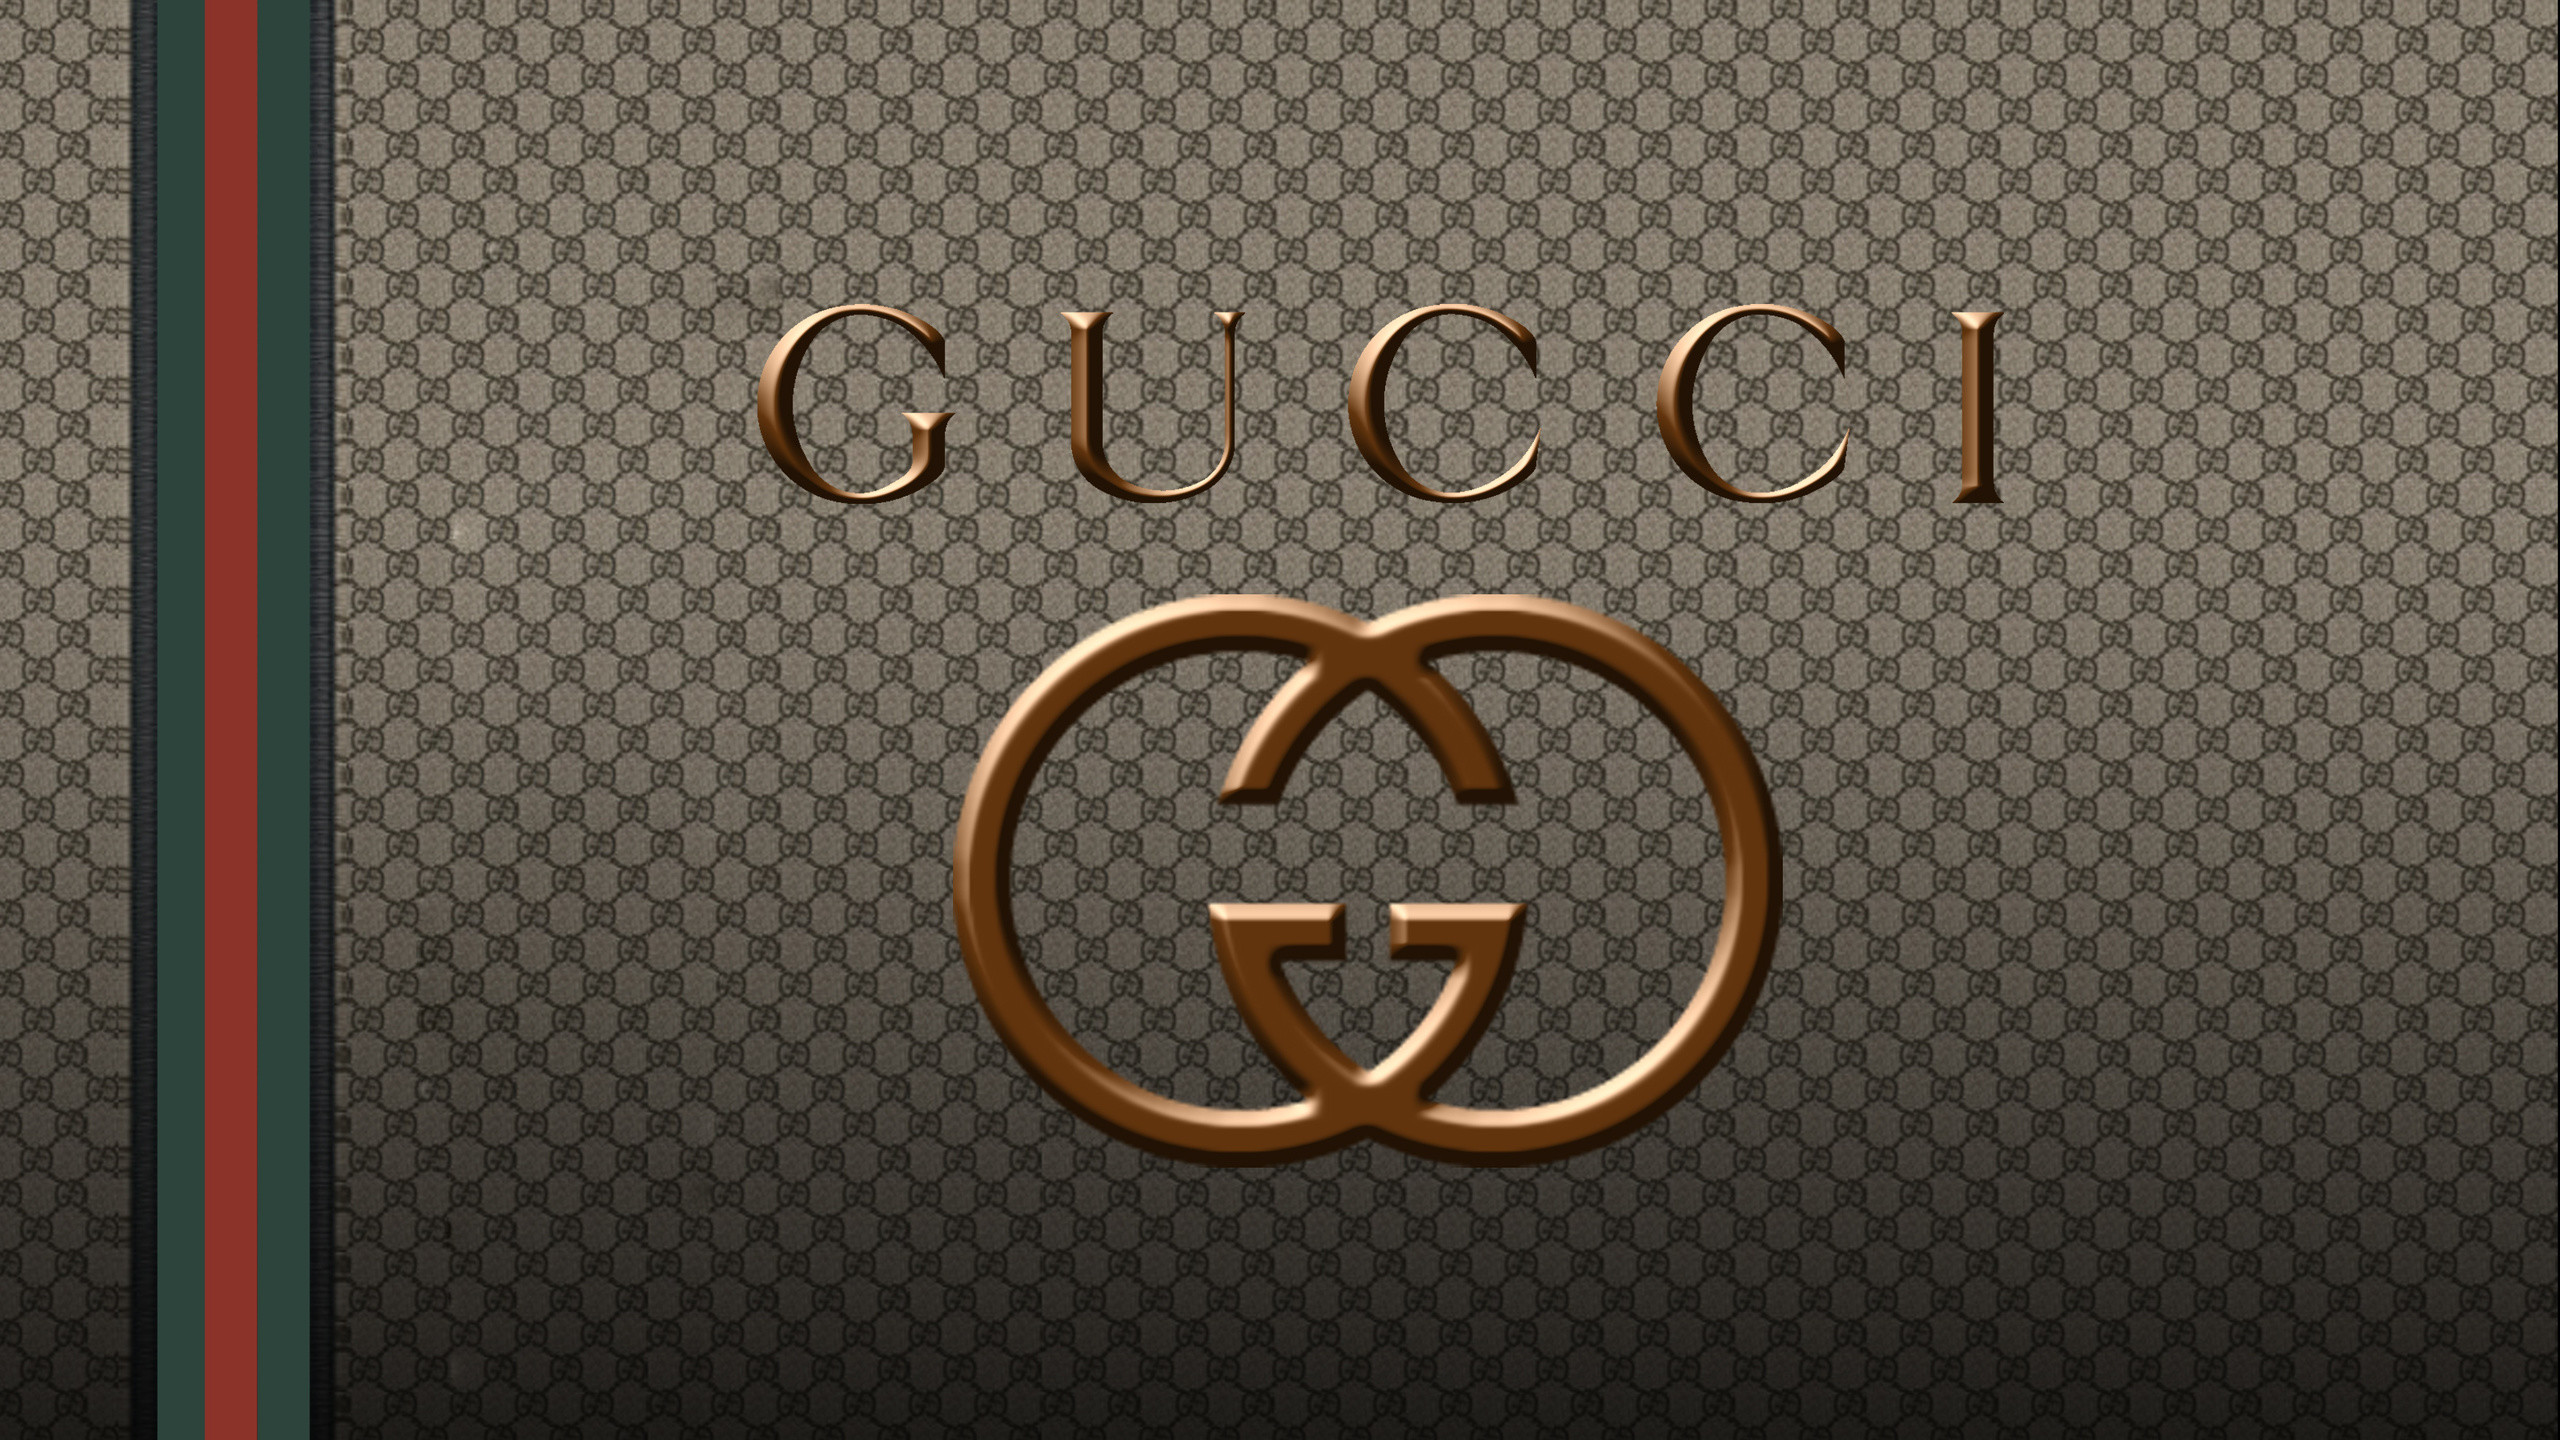 Res: 2560x1440, Logo, Fashion Brands, Brand Gucci Logo Wallpapers and Pictures, Photos